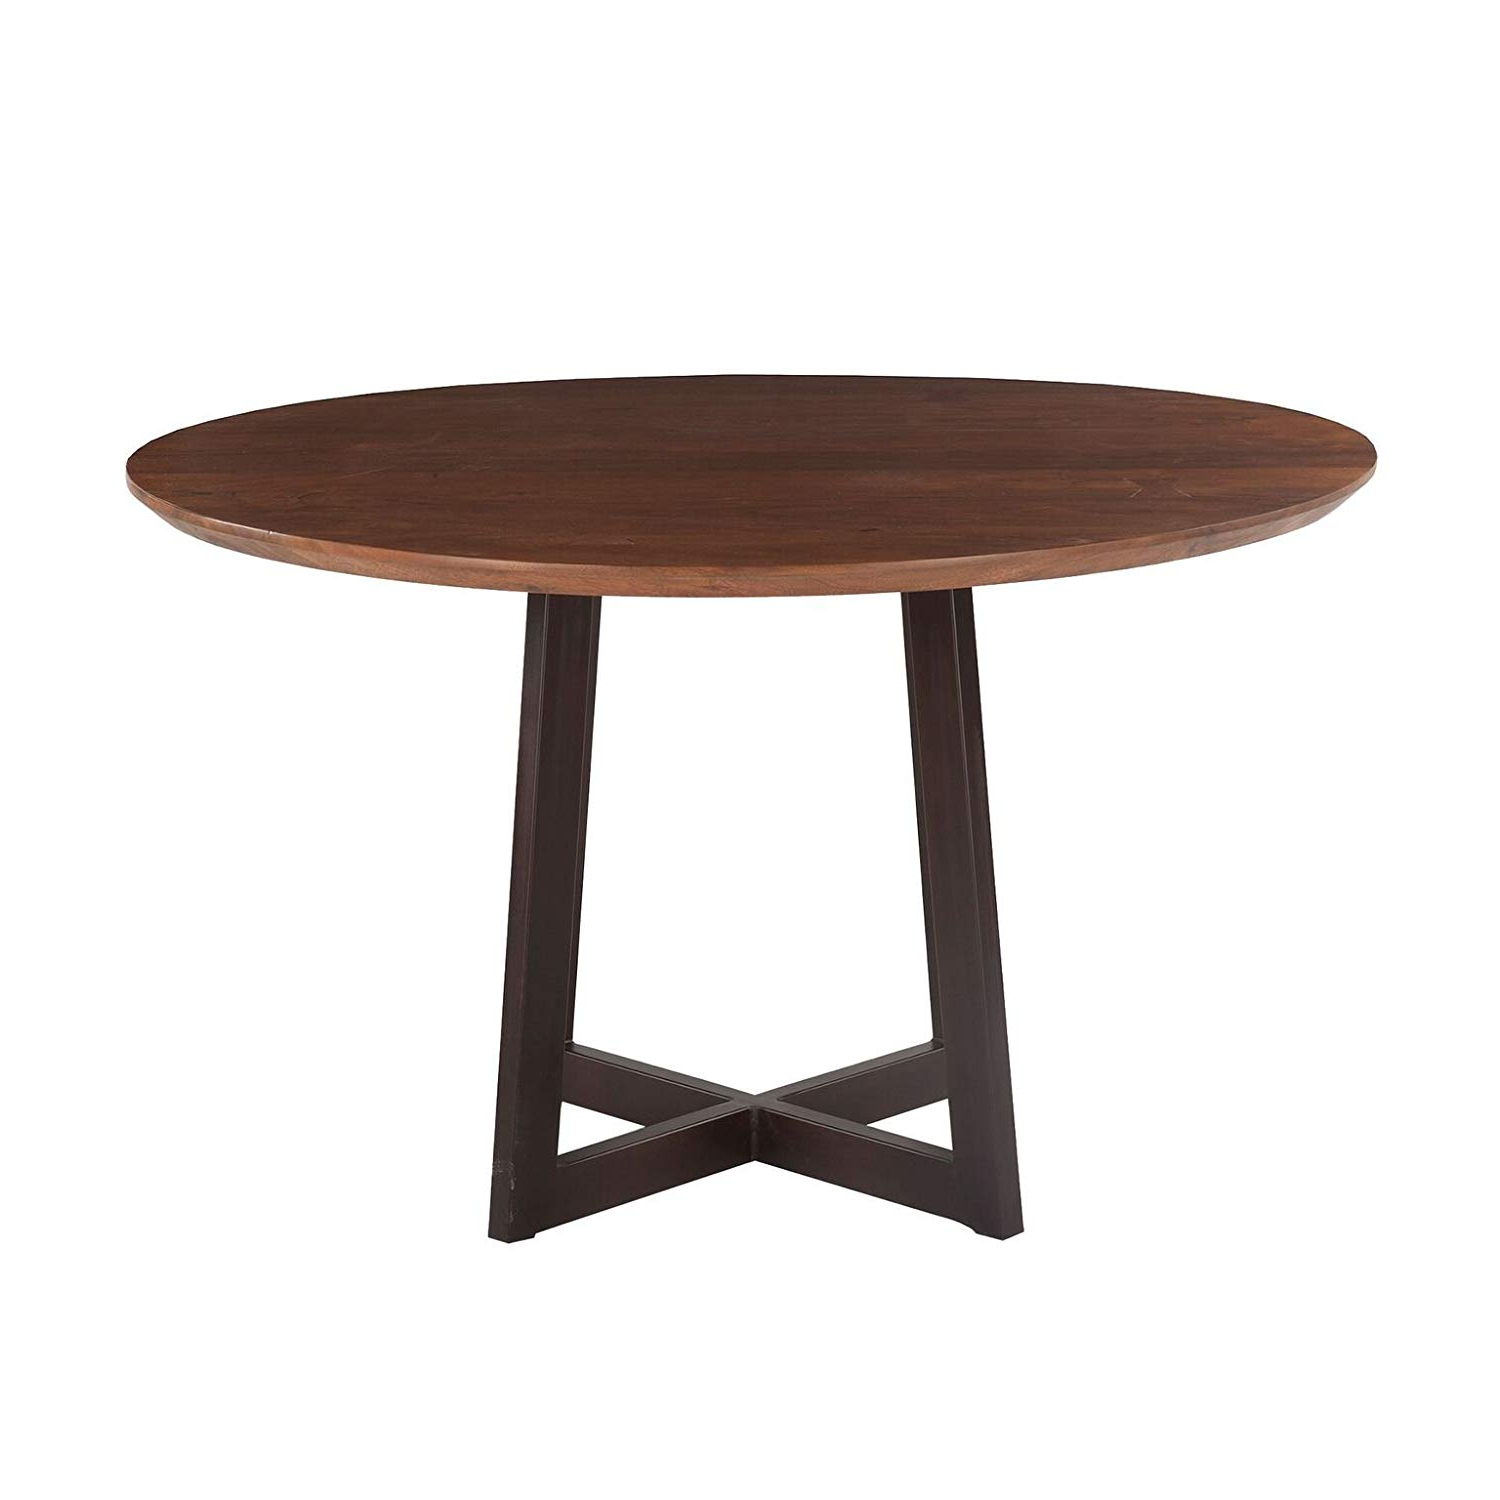 Famous Acacia Top Dining Tables With Metal Legs With Regard To Amazon – World Interiors Acacia Wood And Iron Round (View 13 of 25)